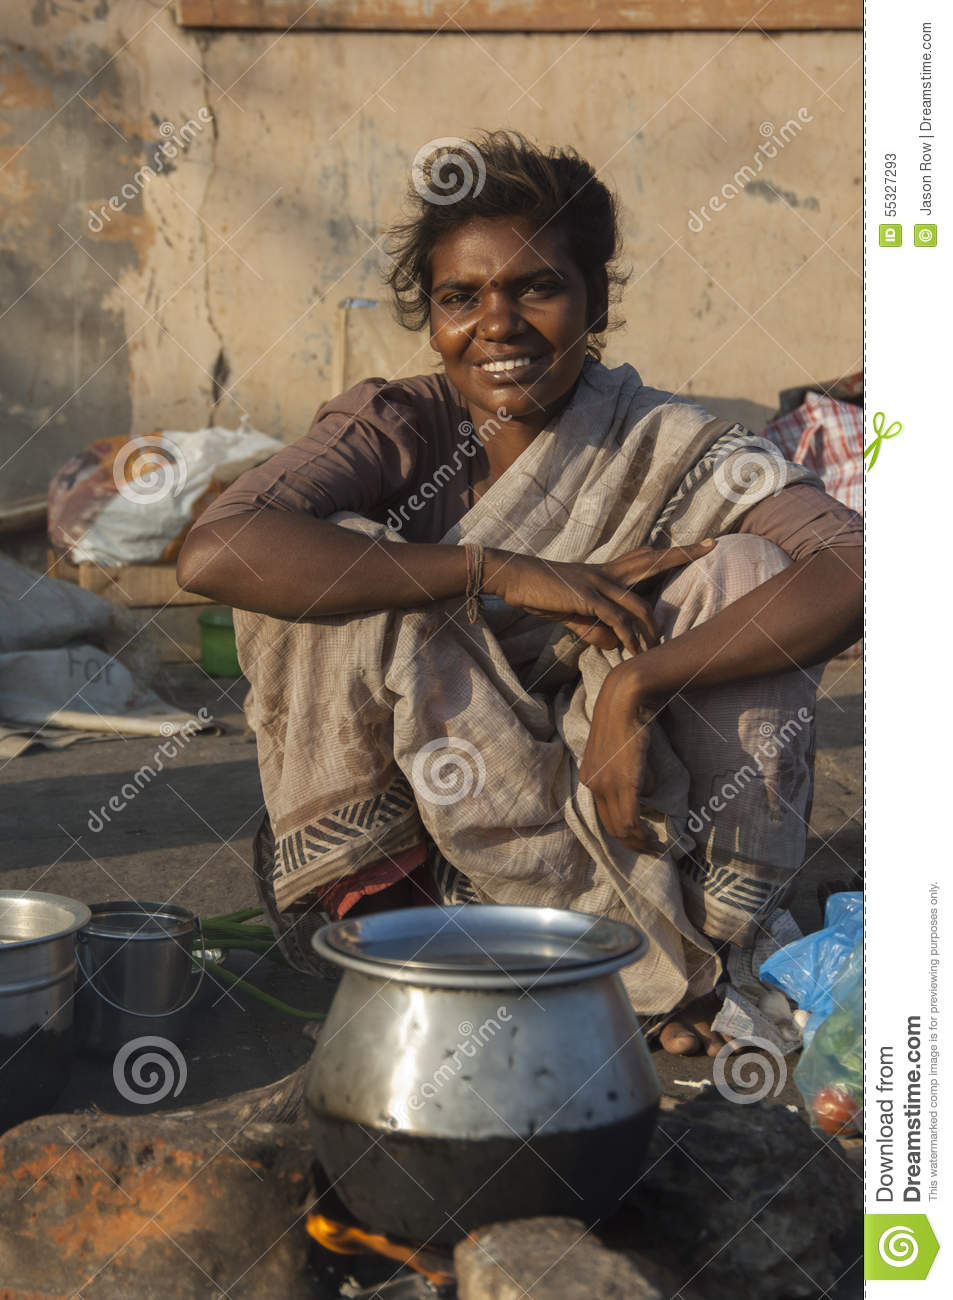 Beautiful young street woman in Chennai, India